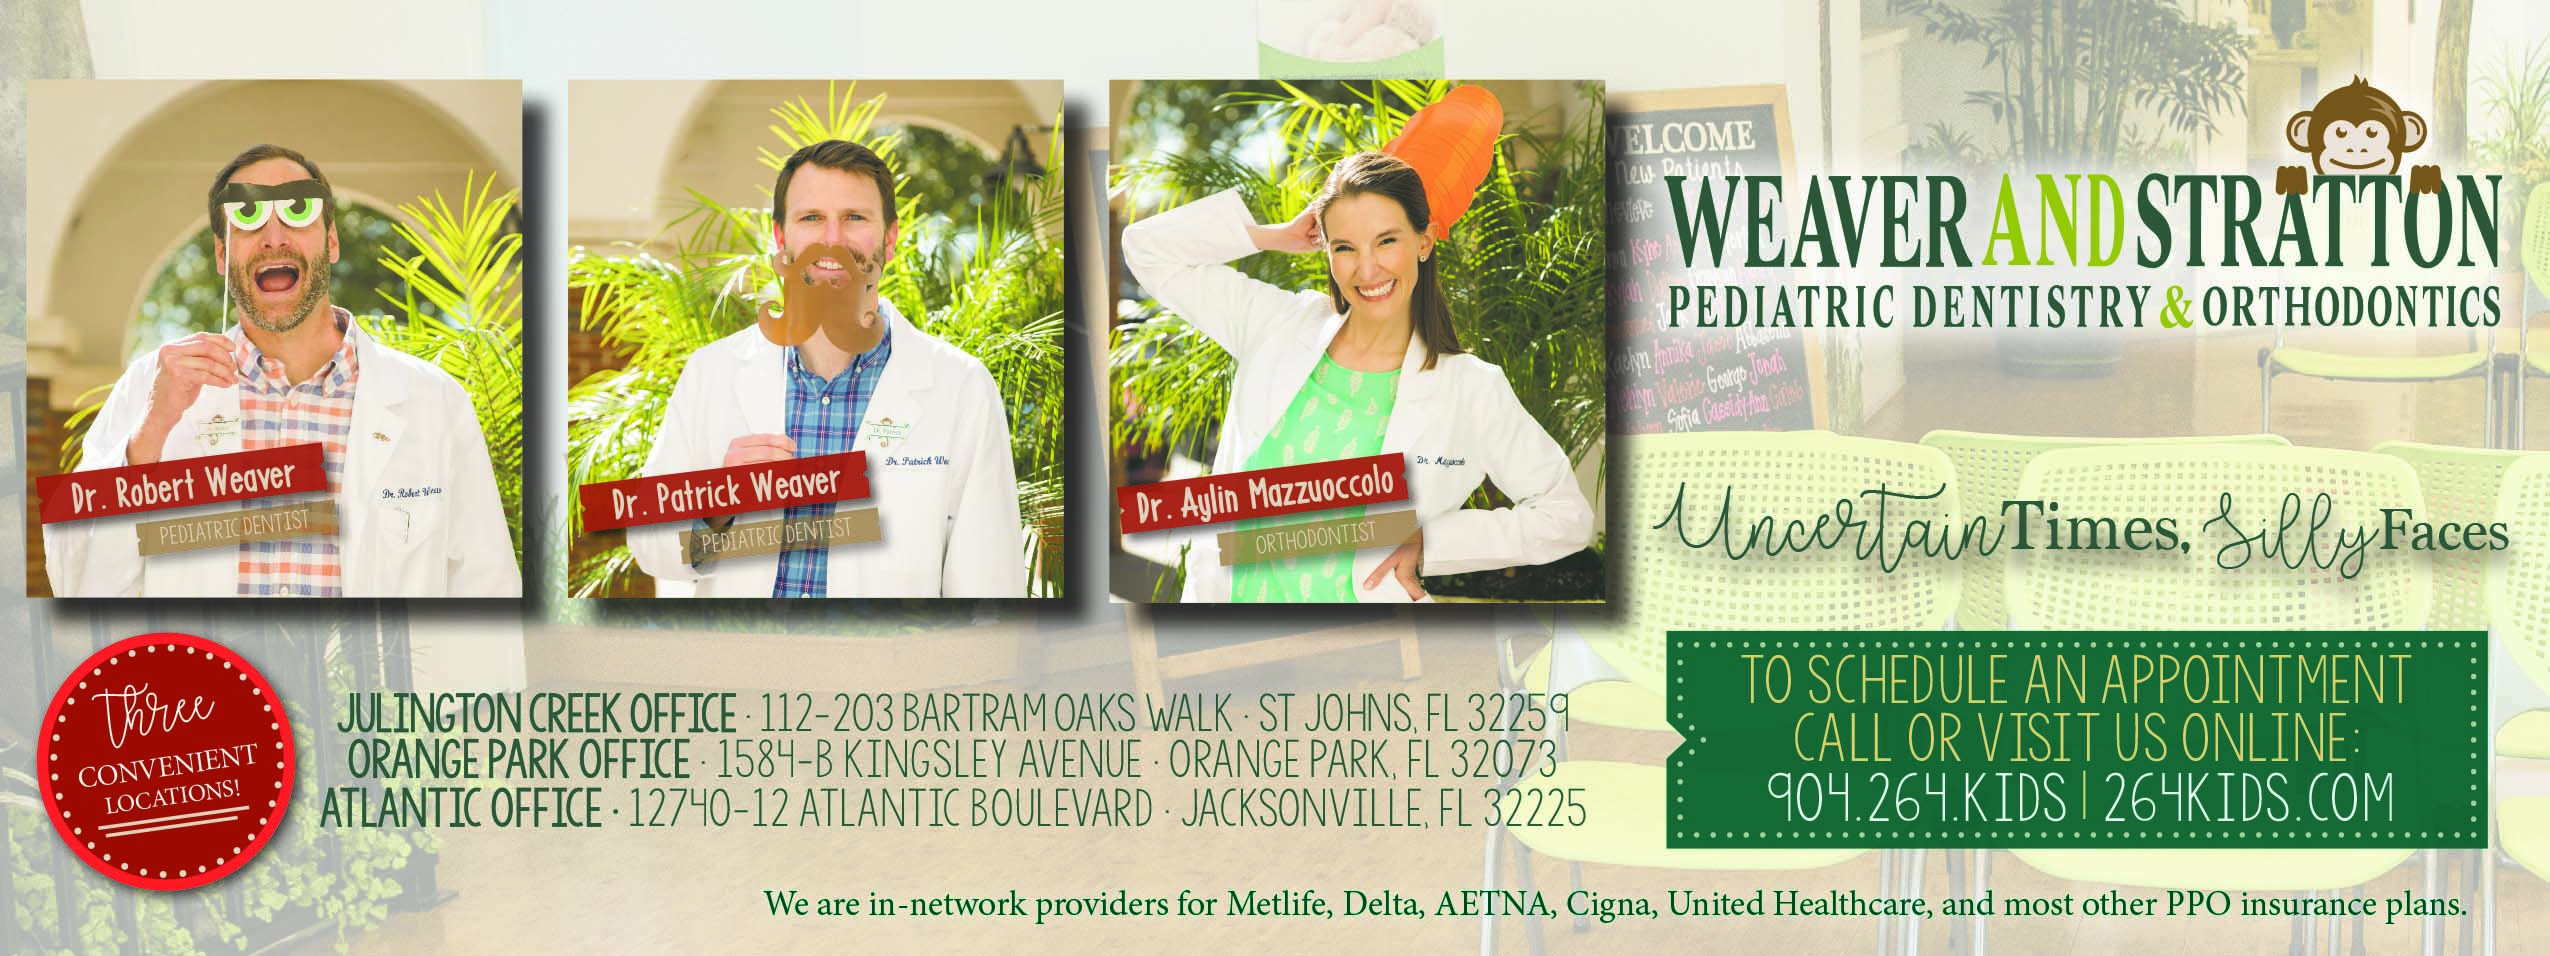 Weaver and Stratton pediatric dentistry & orthodontics. Uncertain times, silly faces